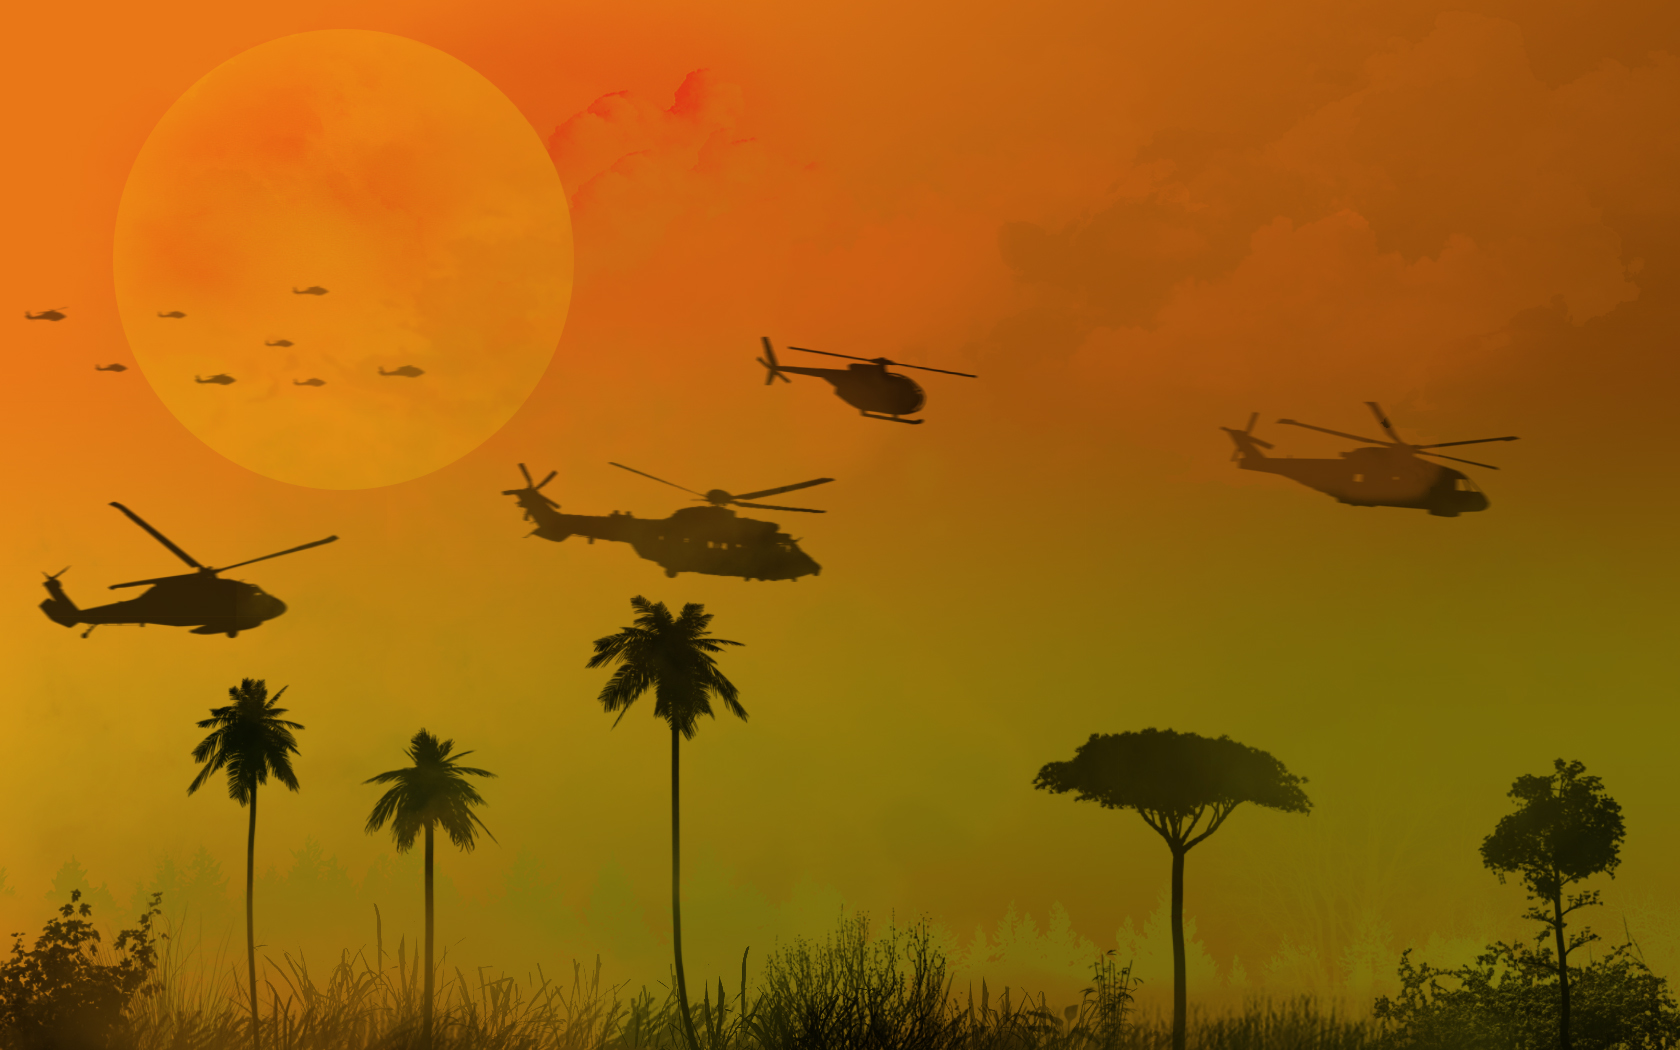 Apocalypse Now Wallpaper 1680x1050